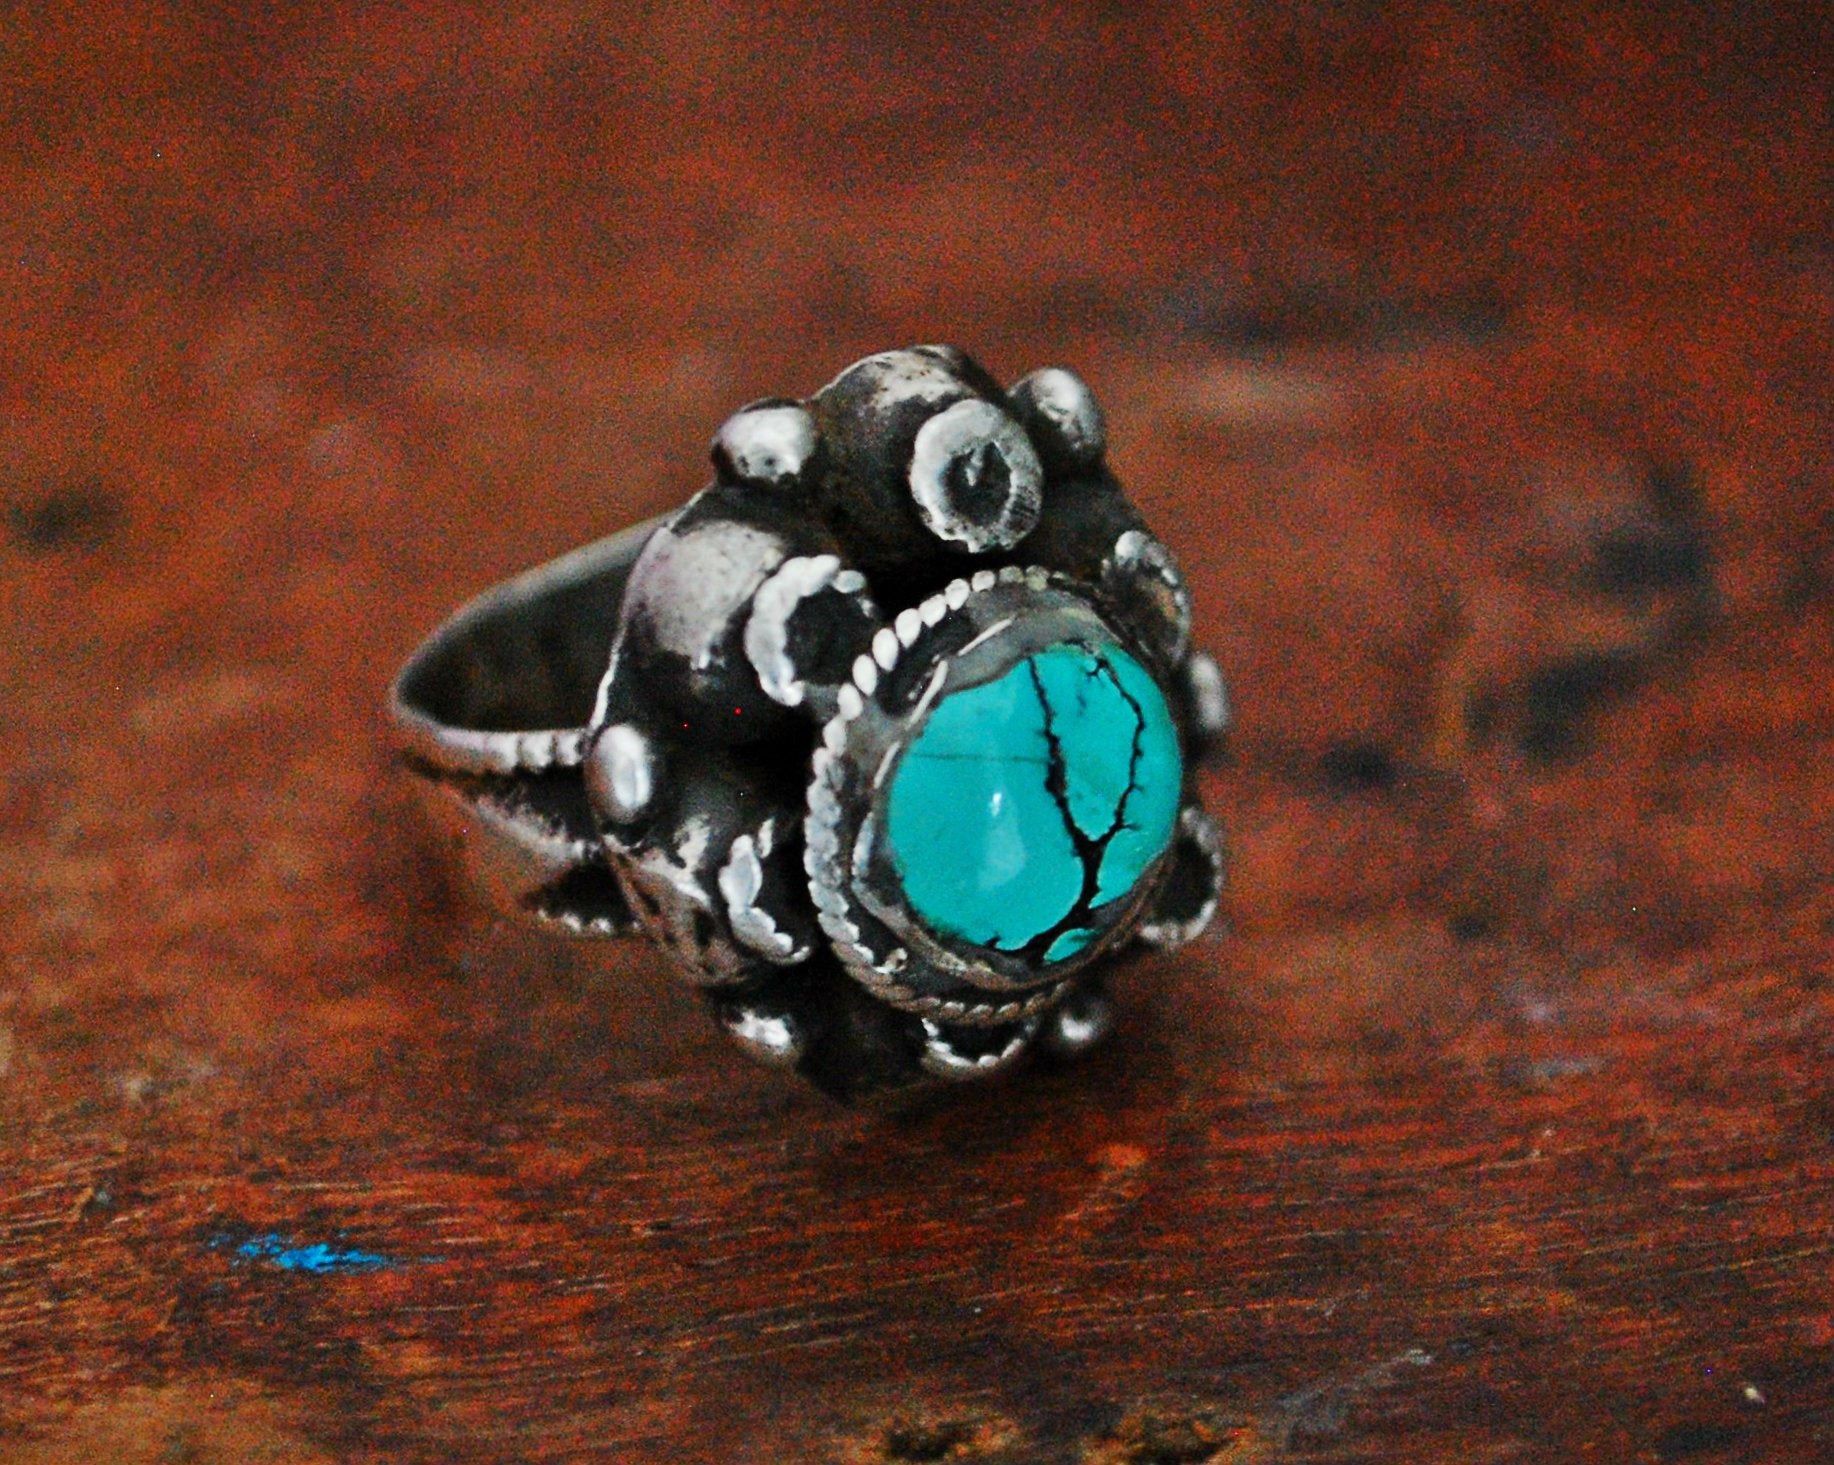 Antique Afghani Turquoise Ring - Size 7